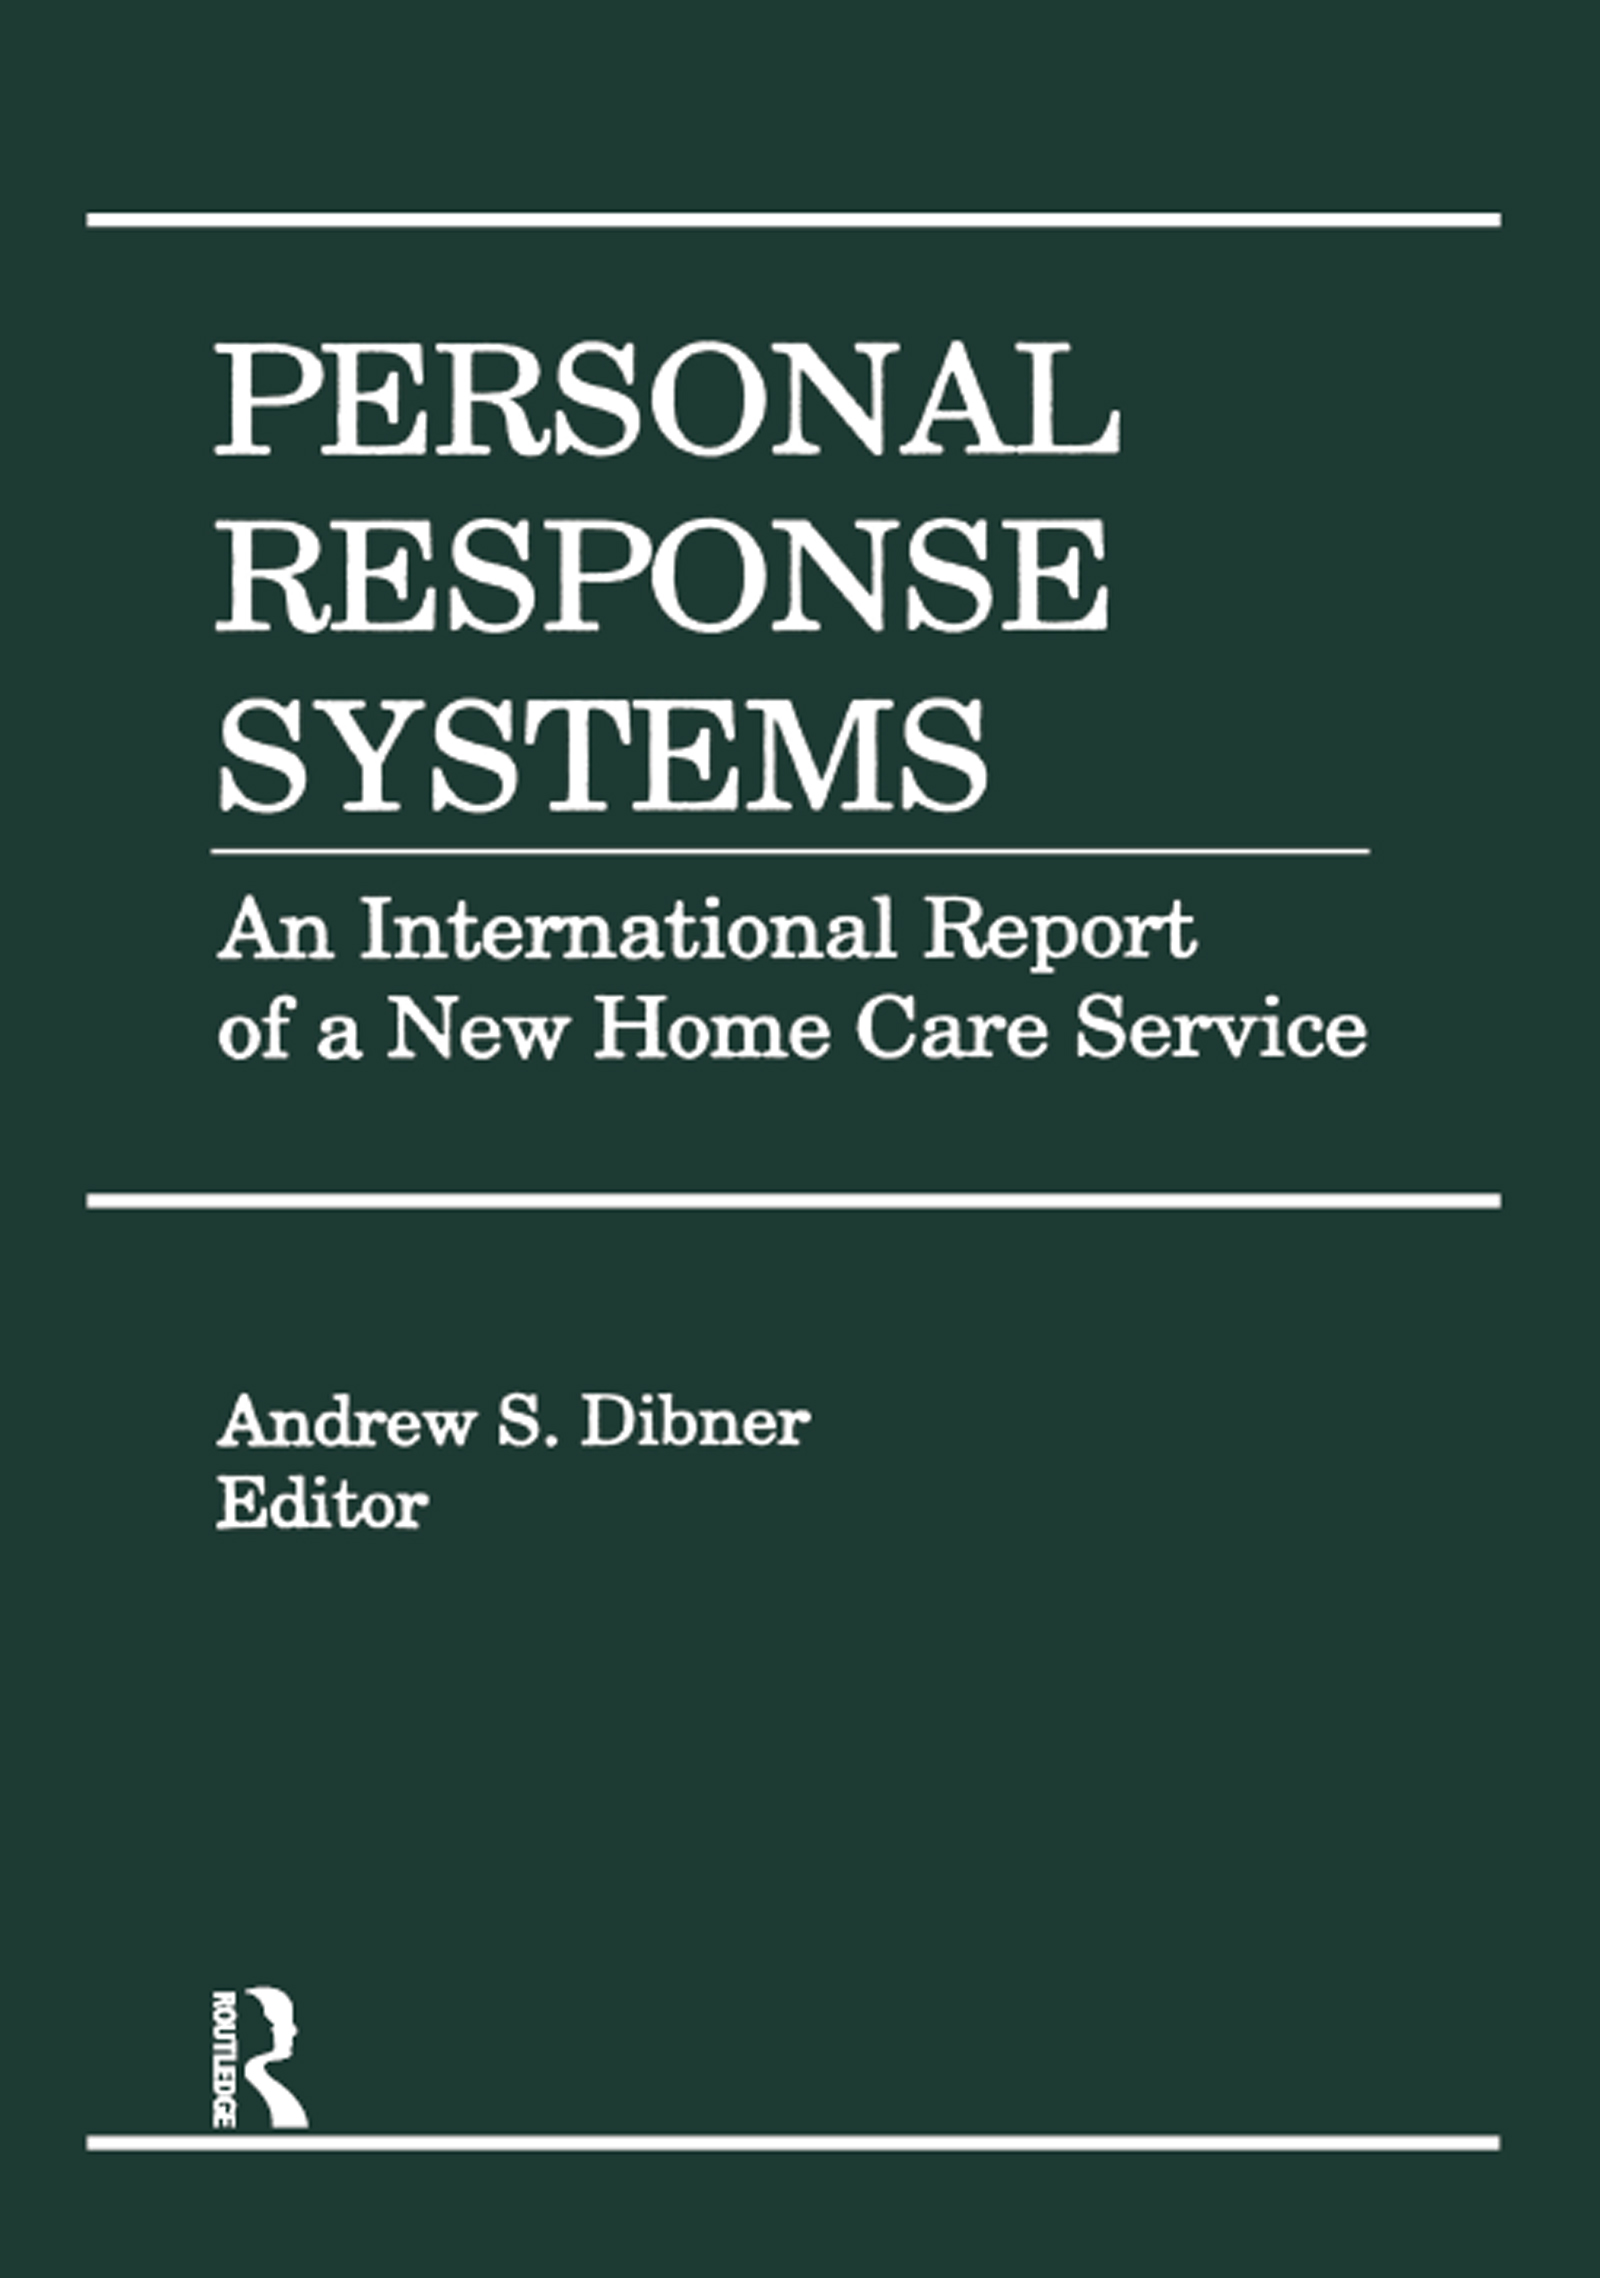 Personal Response Systems An International Report of a New Home Care Service book cover